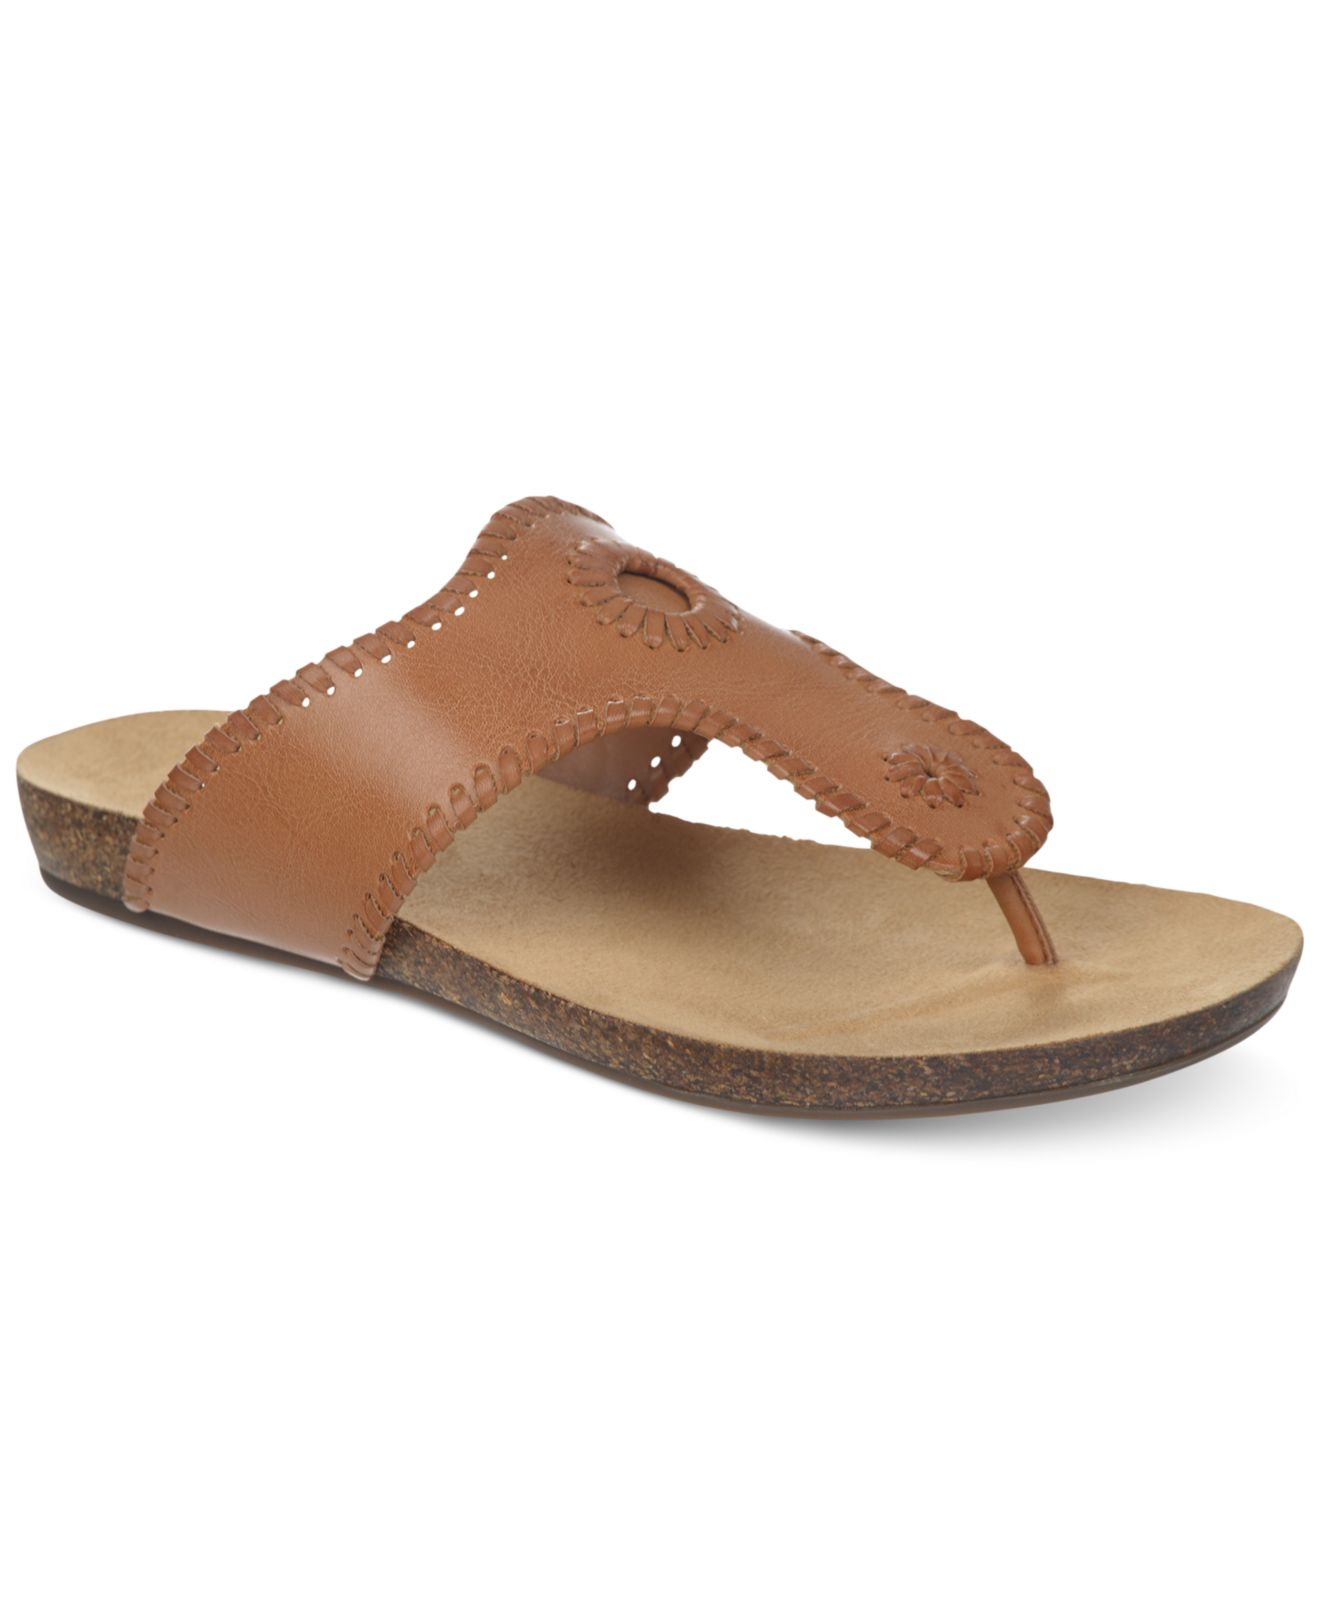 3c9114160da3 Lyst - Dr. Scholls Ridley Footbed Thong Sandals in Natural